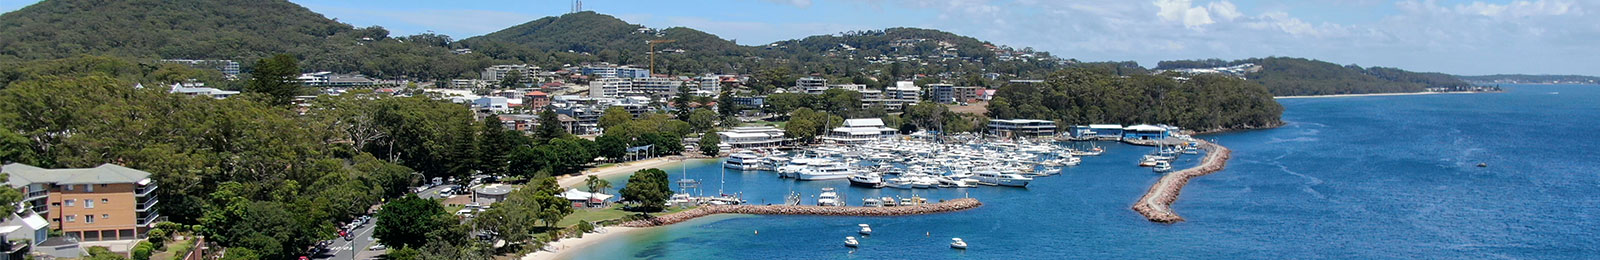 Nelson Bay aerial view